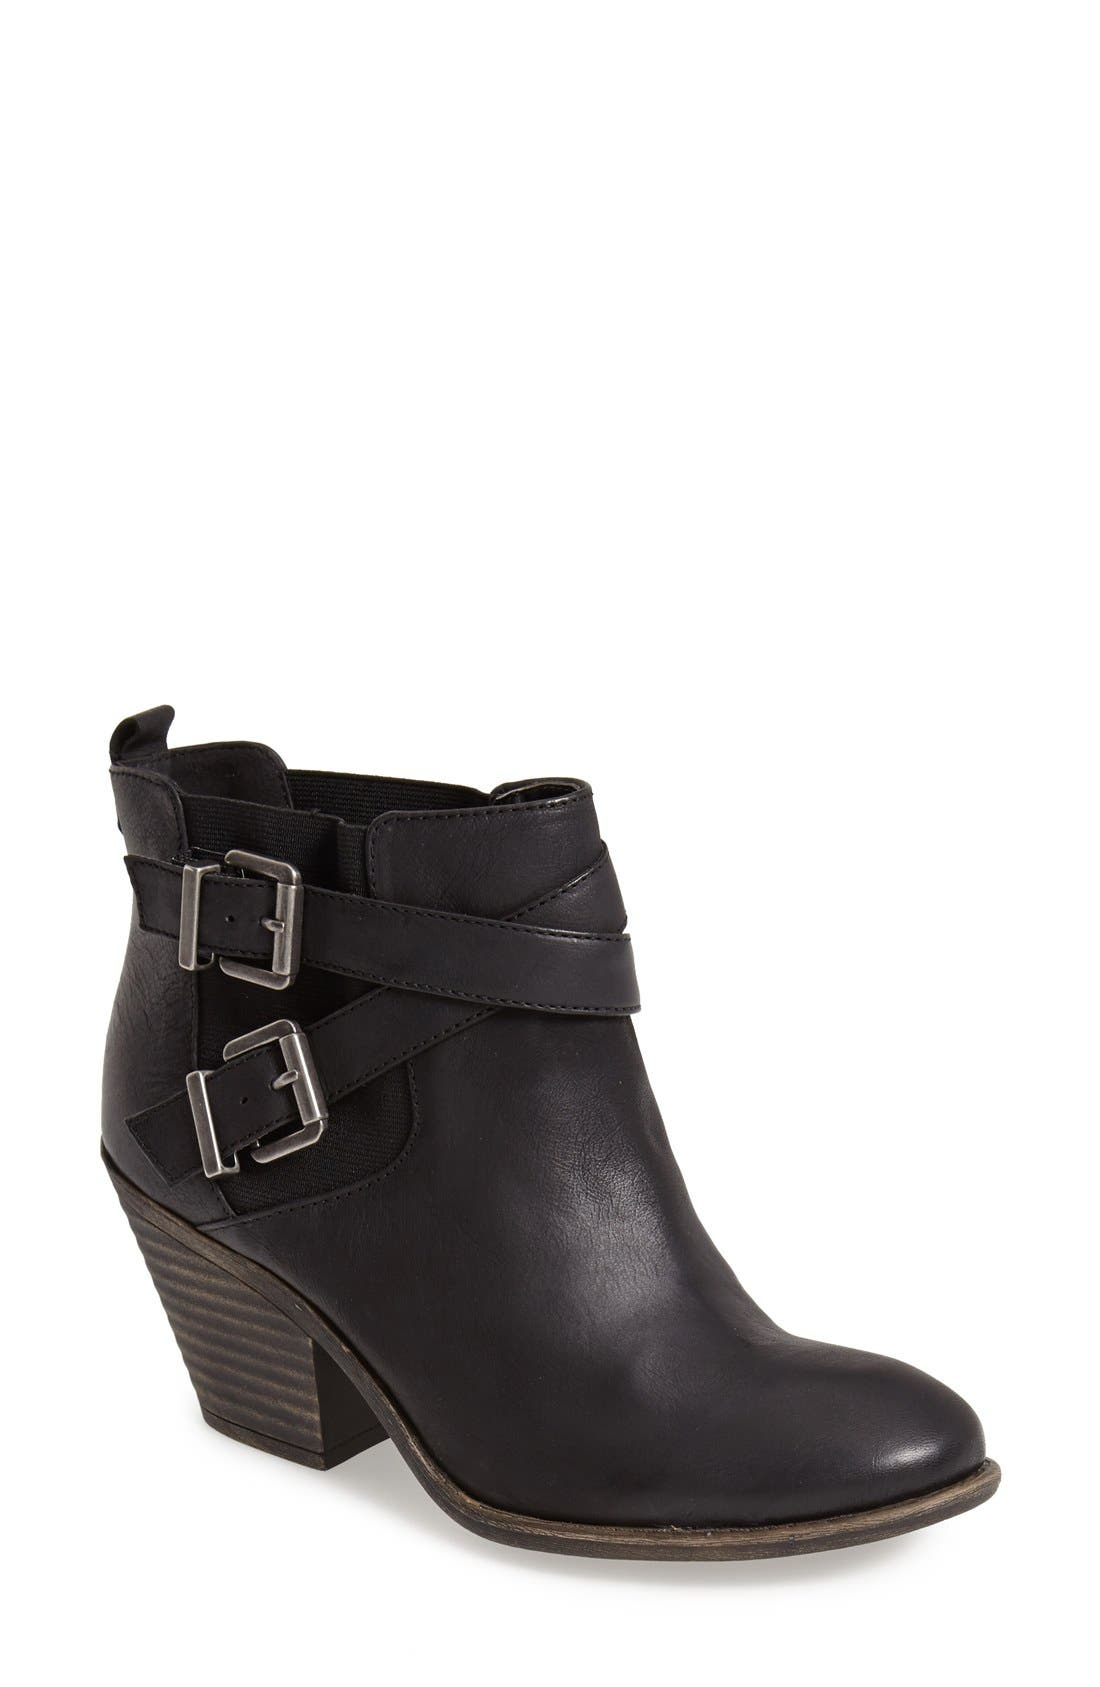 Main Image - Sole Society 'Maris' Leather Bootie (Women)